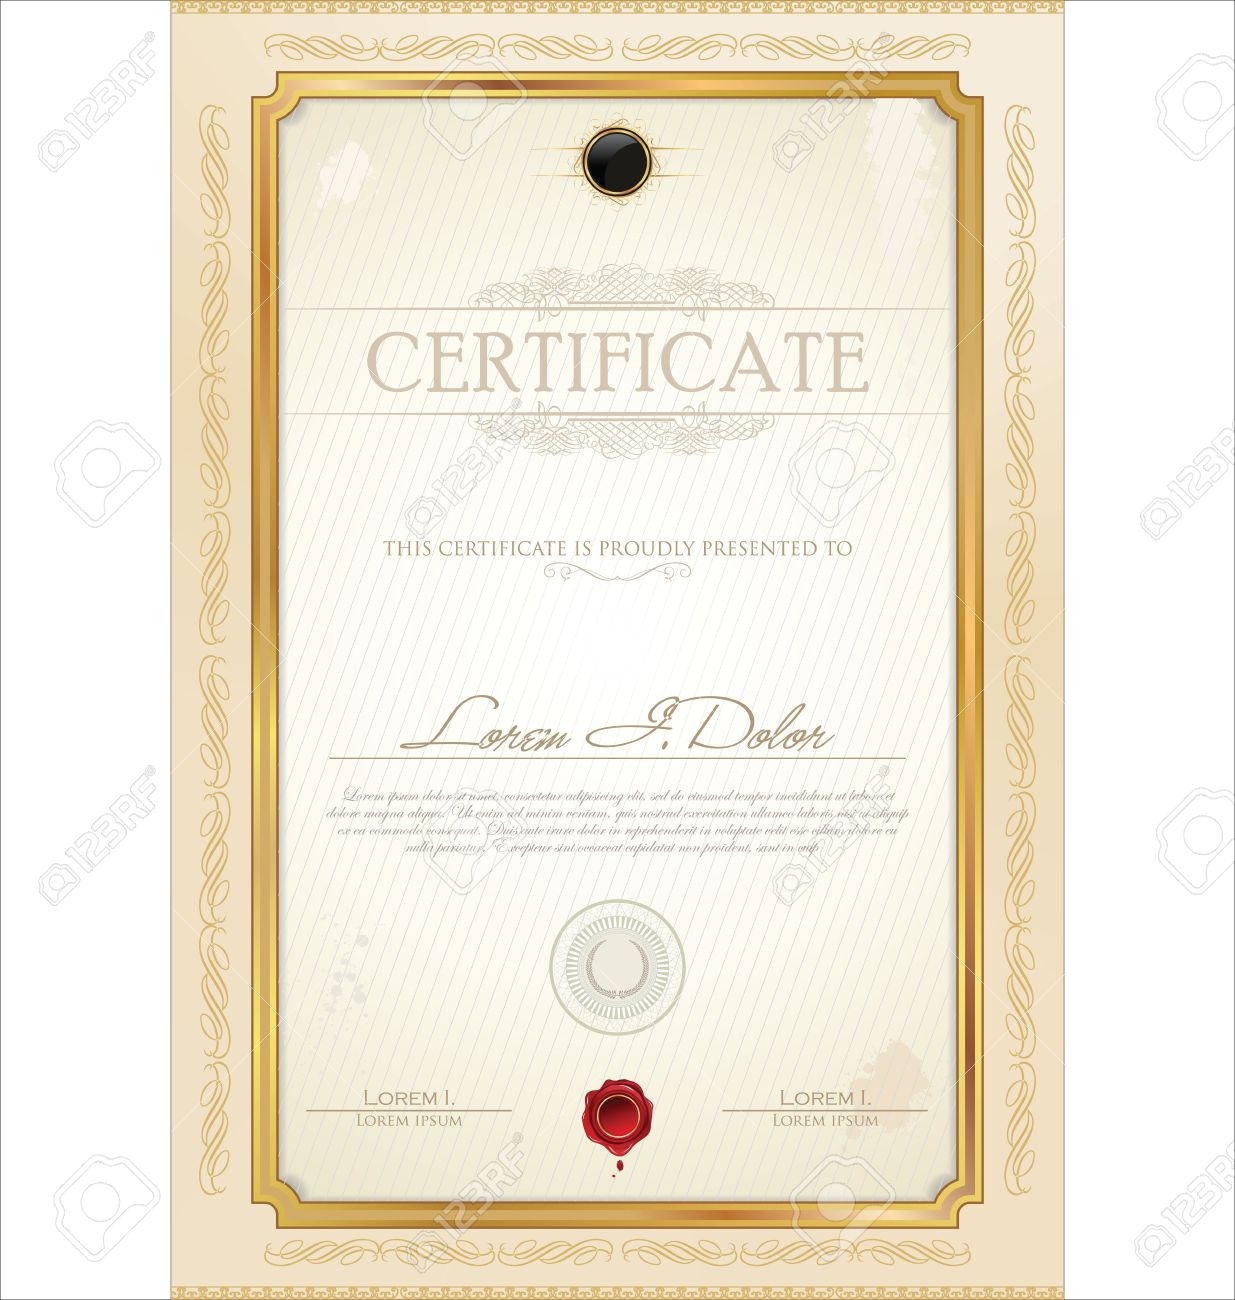 Certificate Border Photos Pictures Royalty Free – Word Certificate Borders